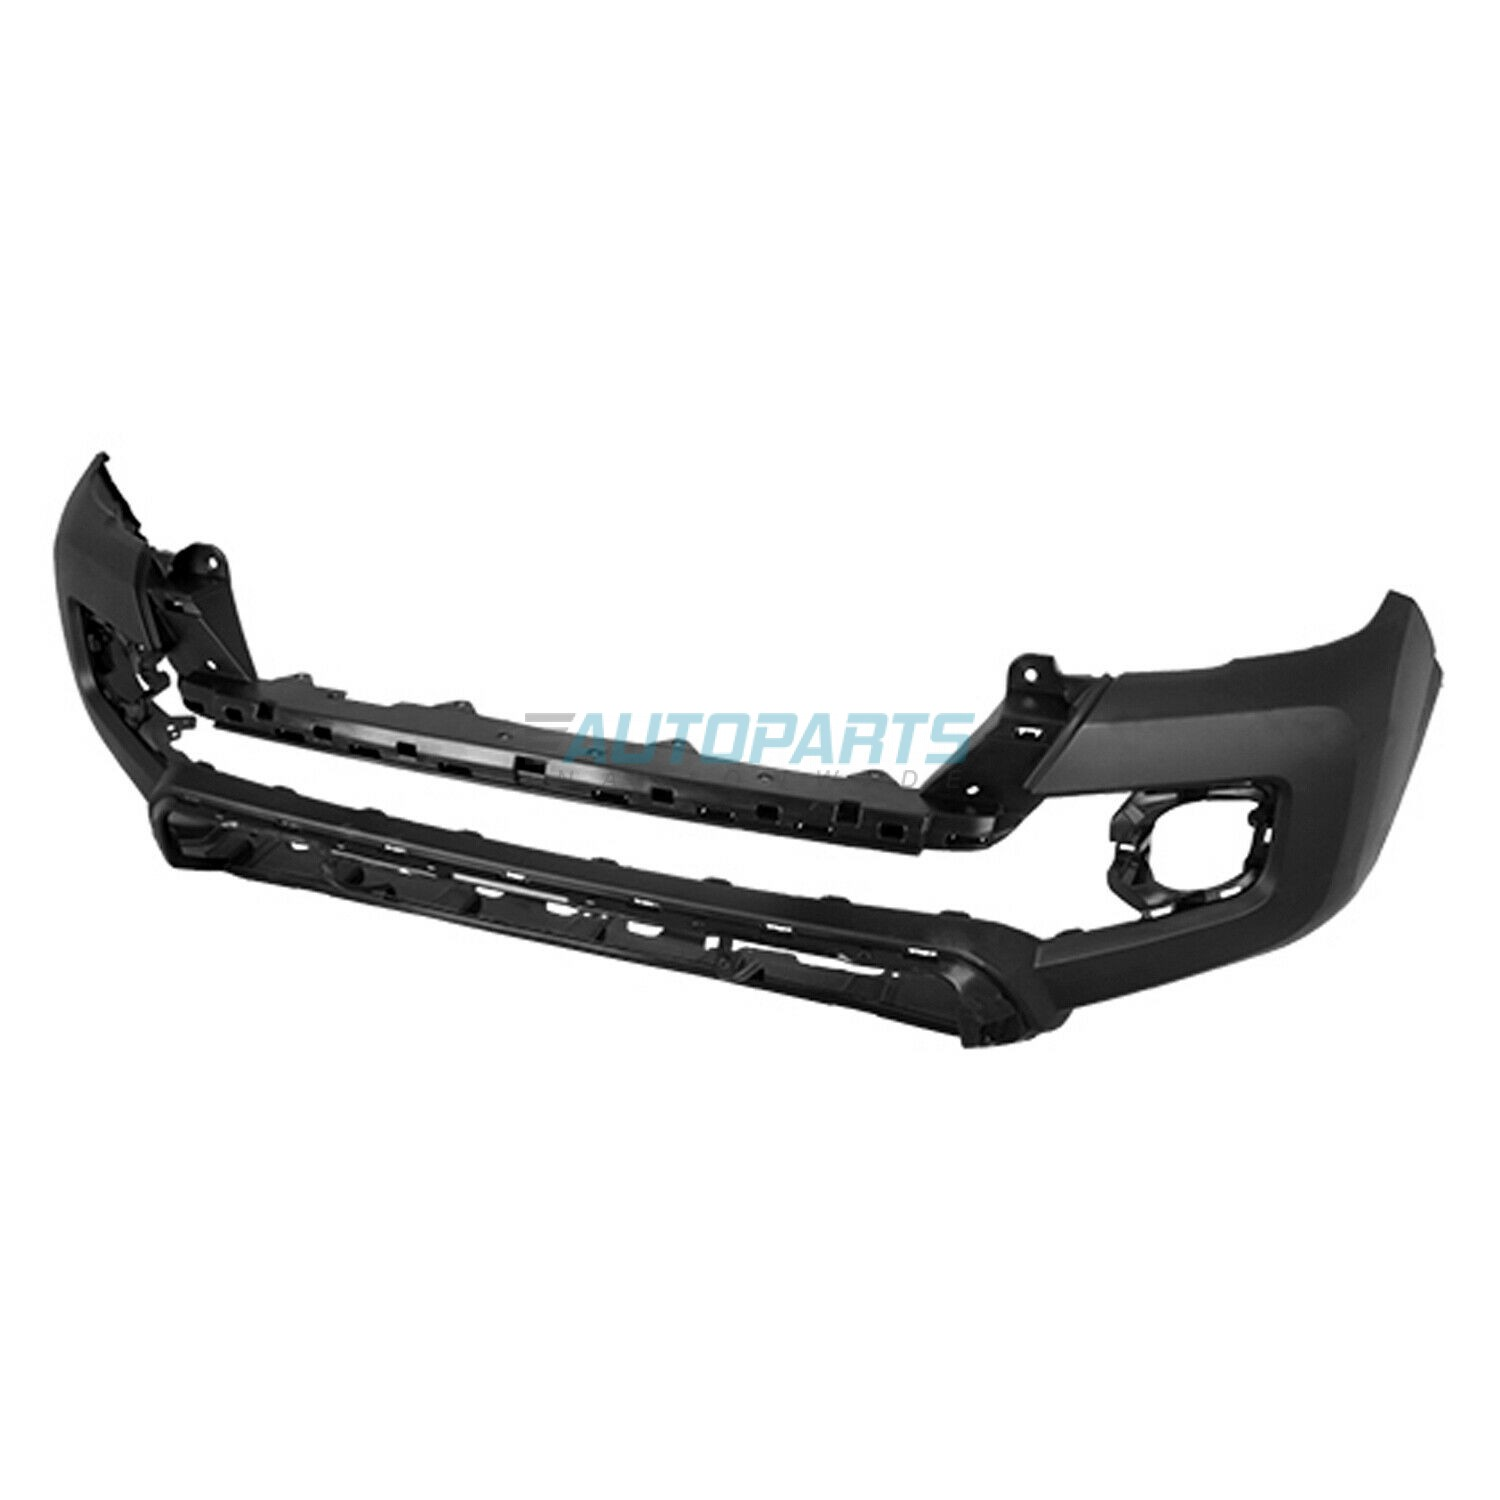 TO1000414C CAPA Certified Front Bumper Cover compatible with 2016-2018 Toyota Tacoma